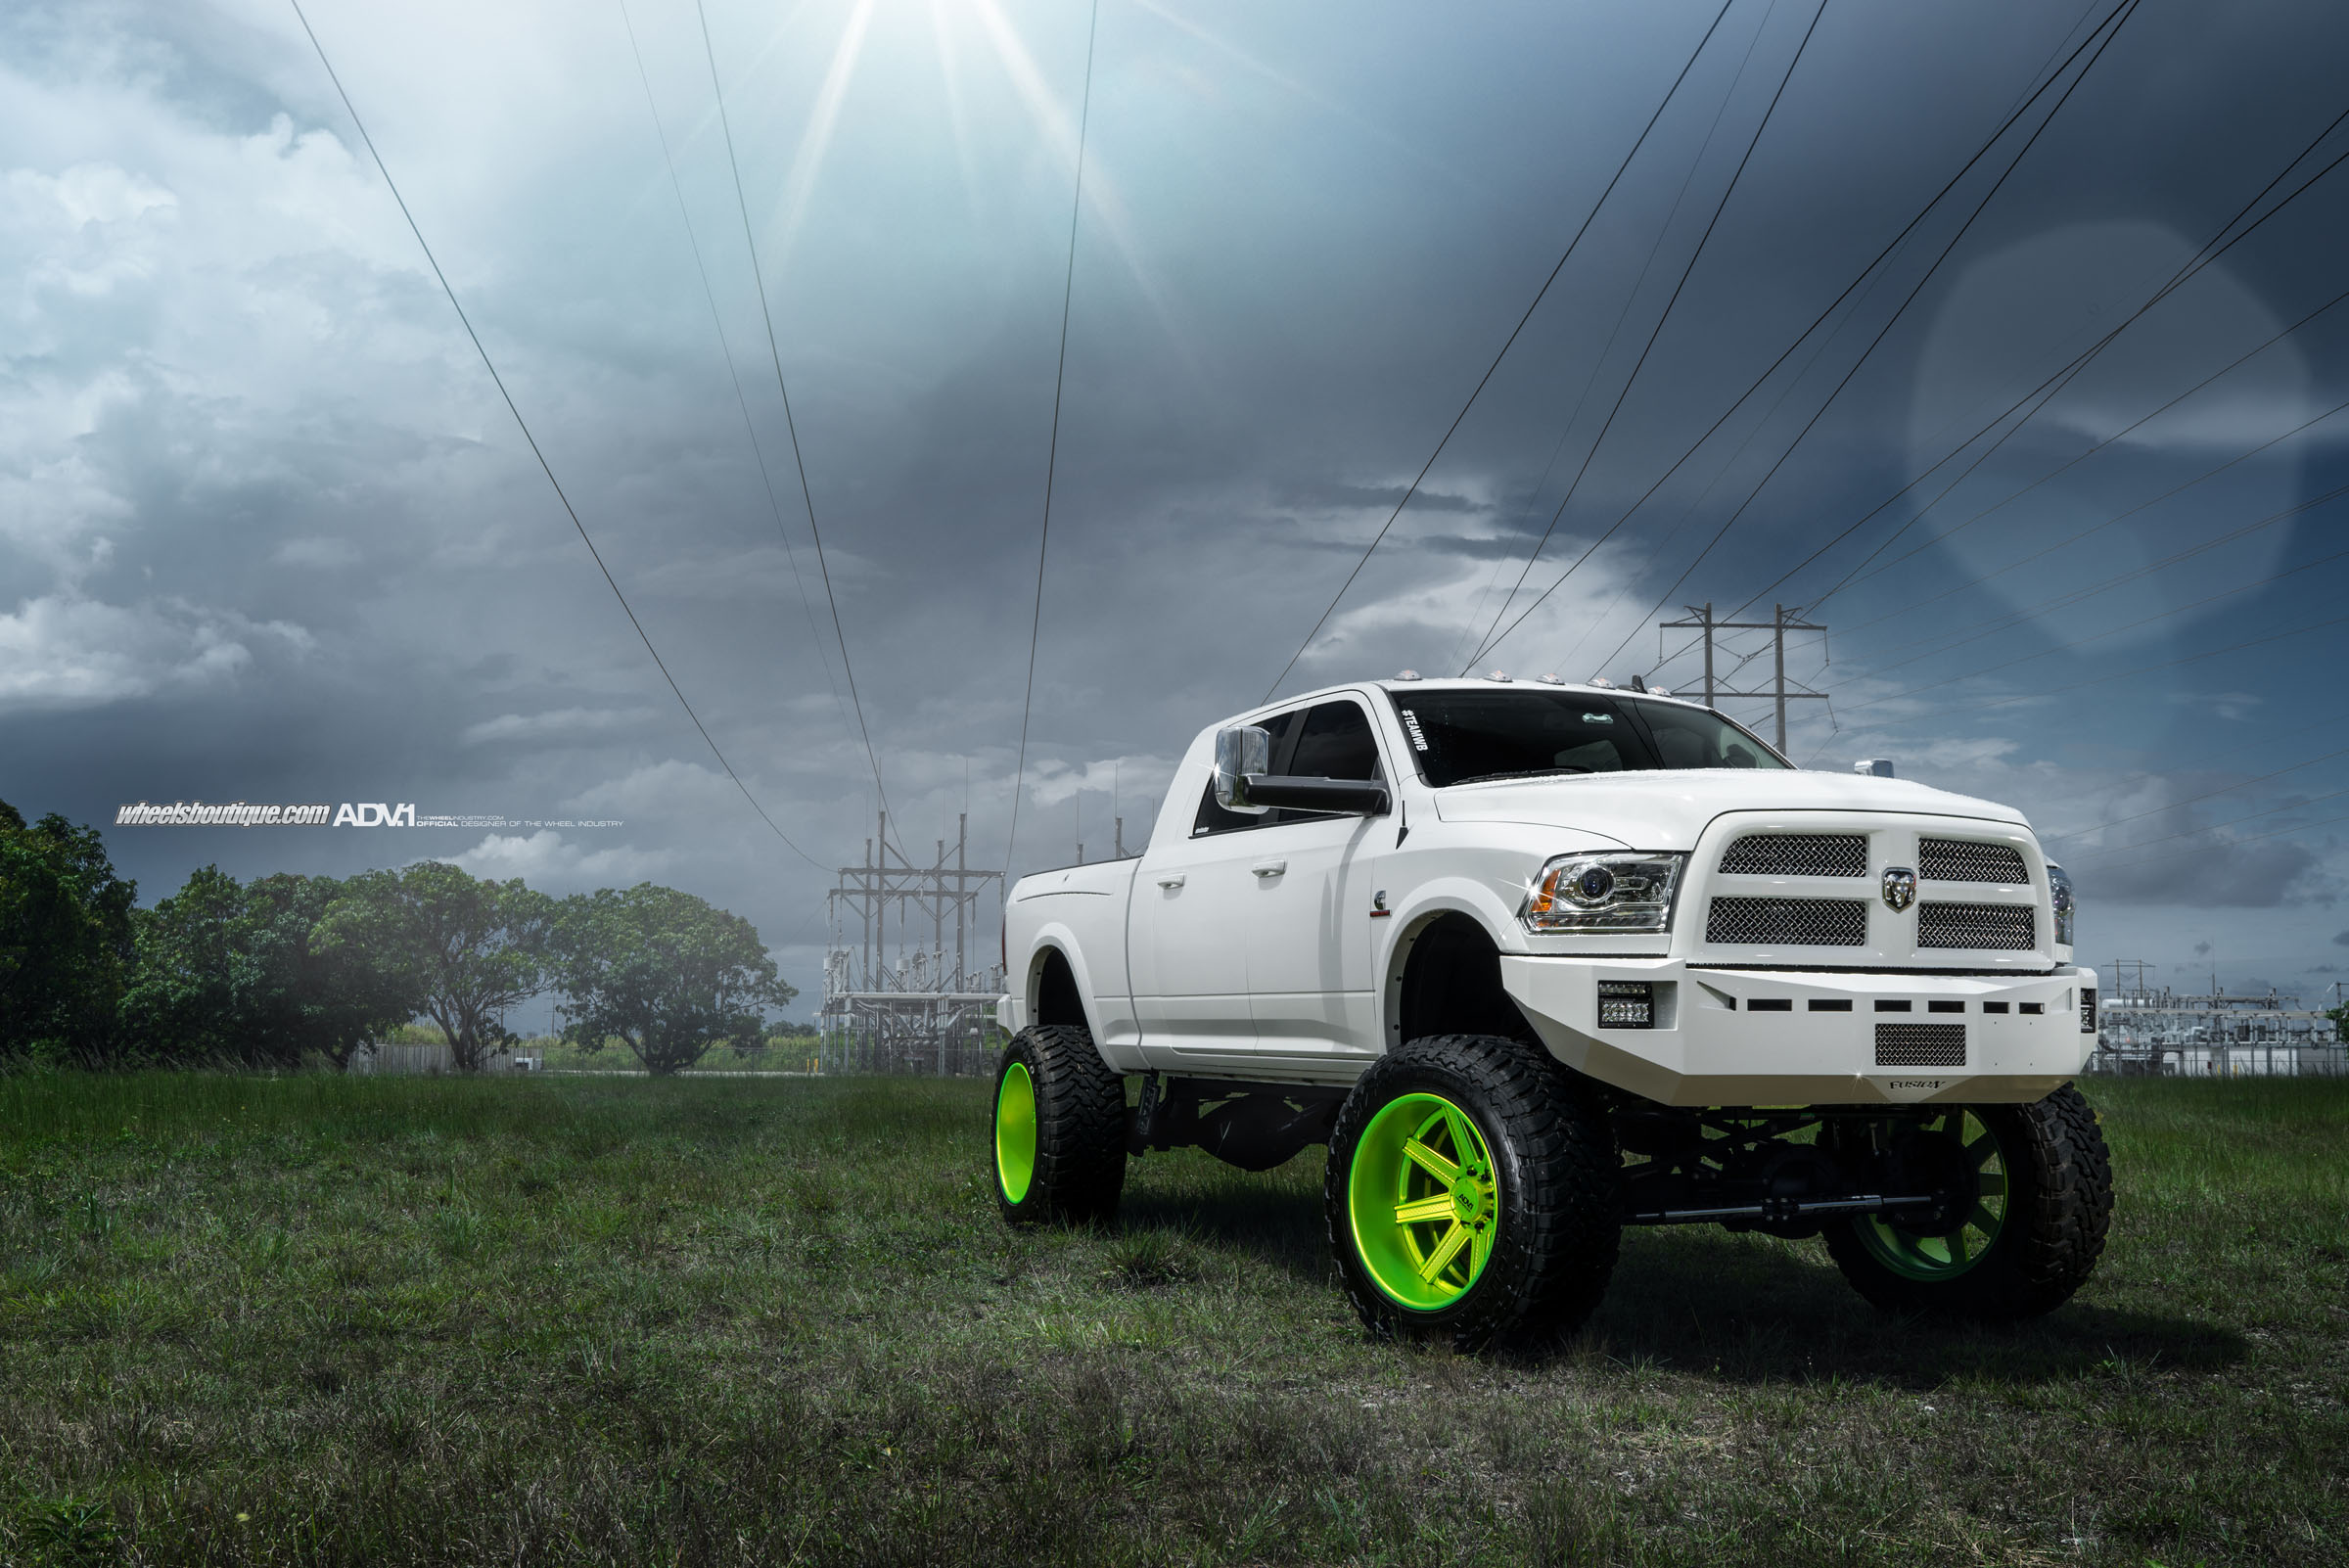 ADV1-dodge-Ram-2500-hd-rims-Lifted-cummins-4x4-forged-F